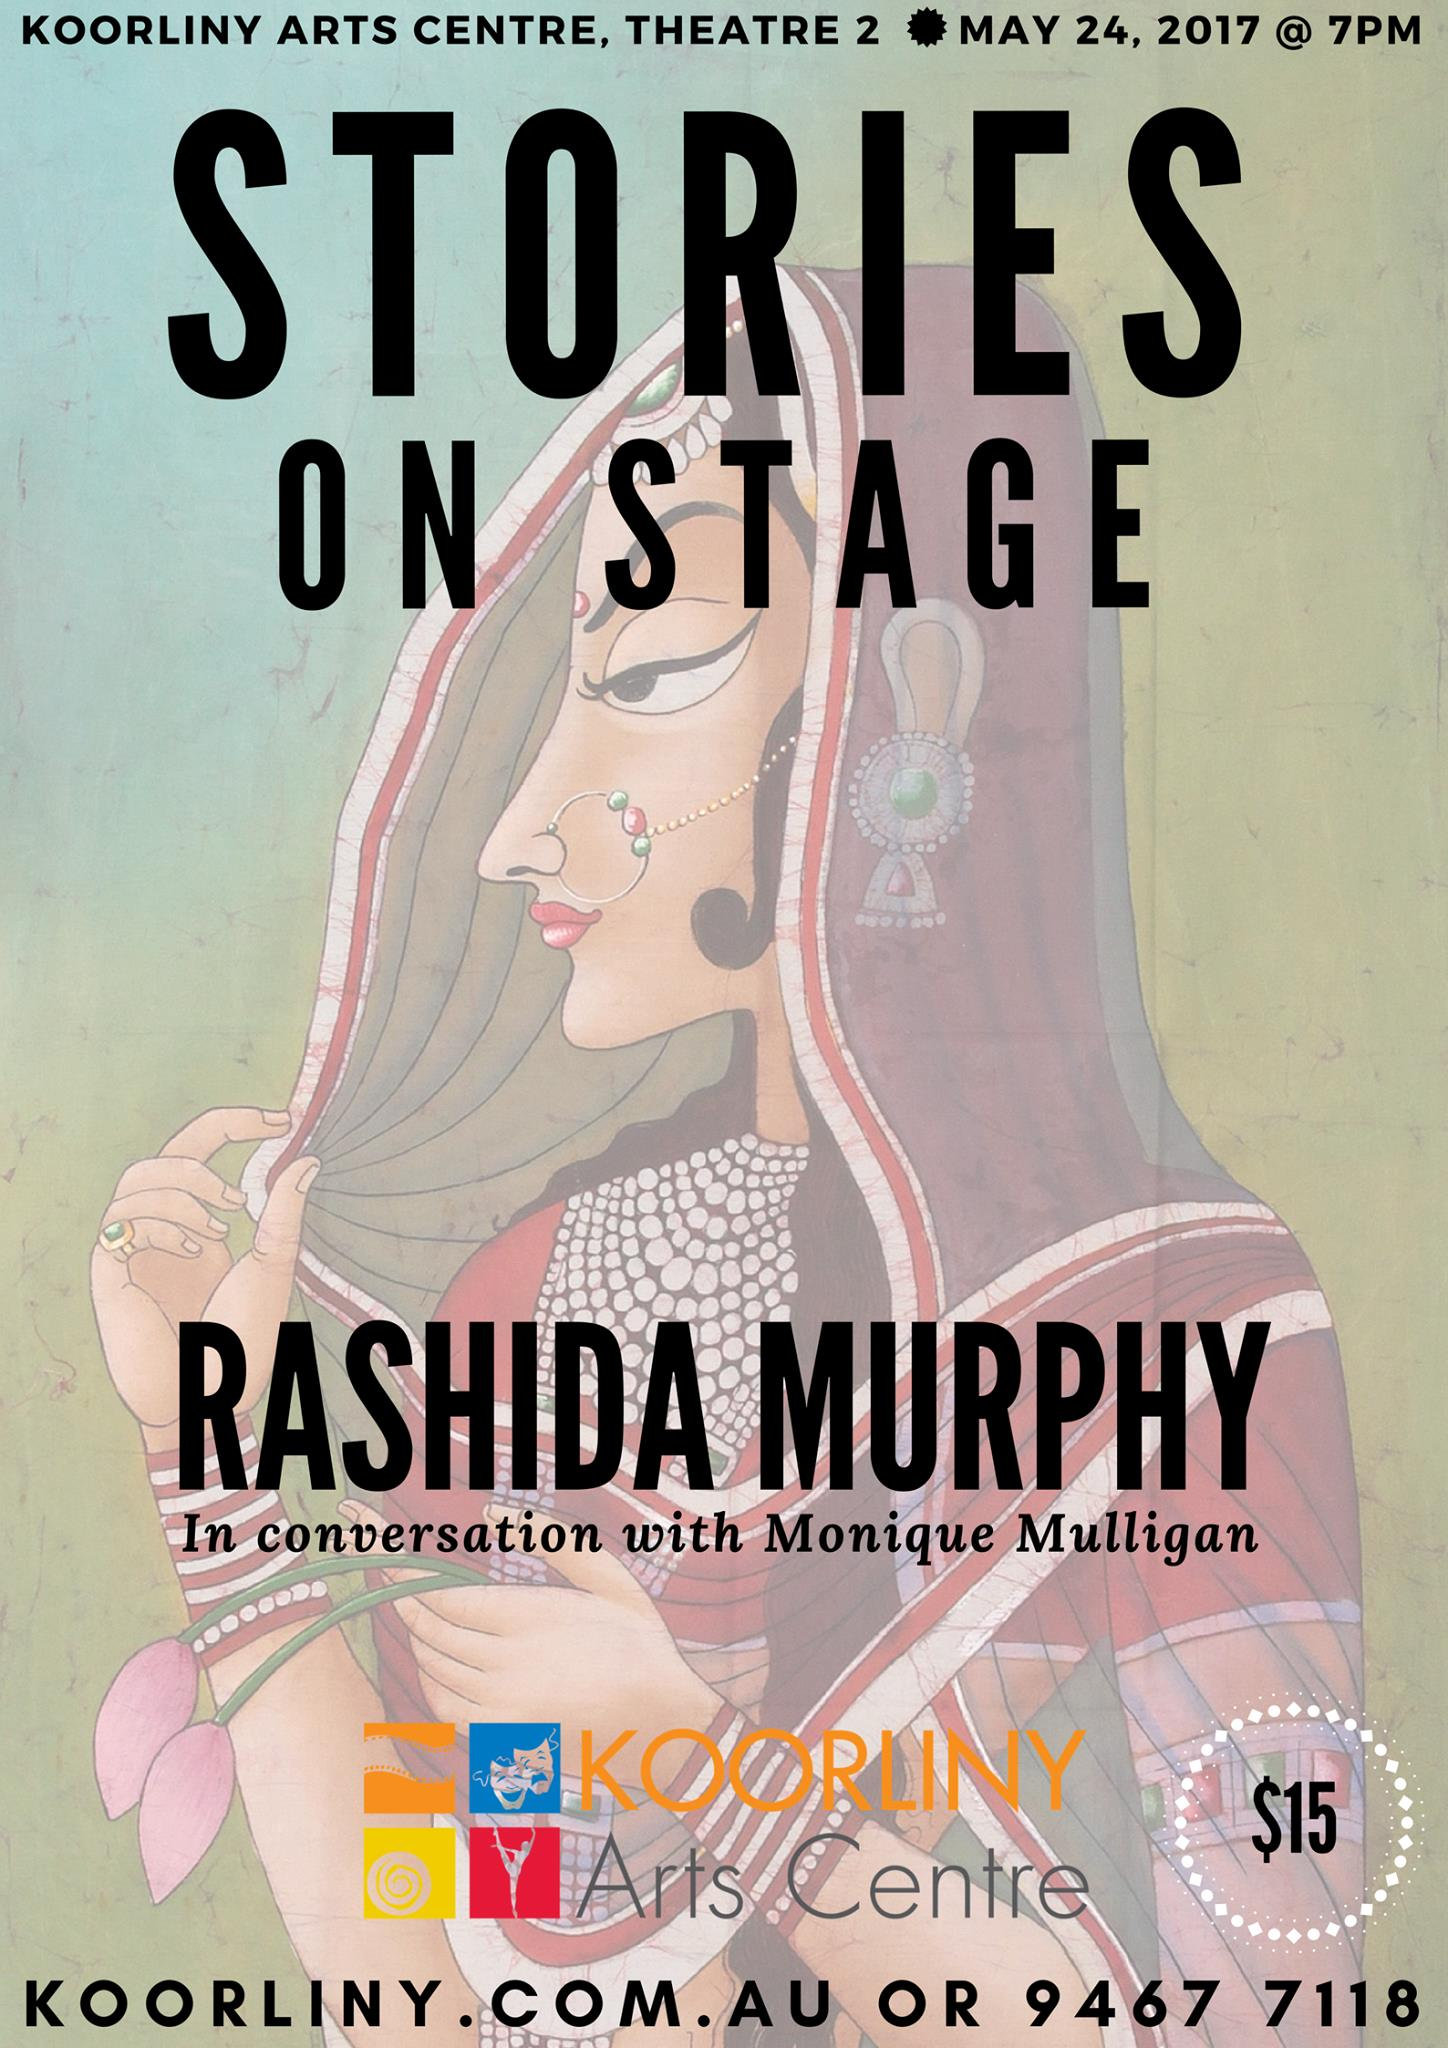 Stories on Stage with Rashida Murphy at Koorliny Arts Centre